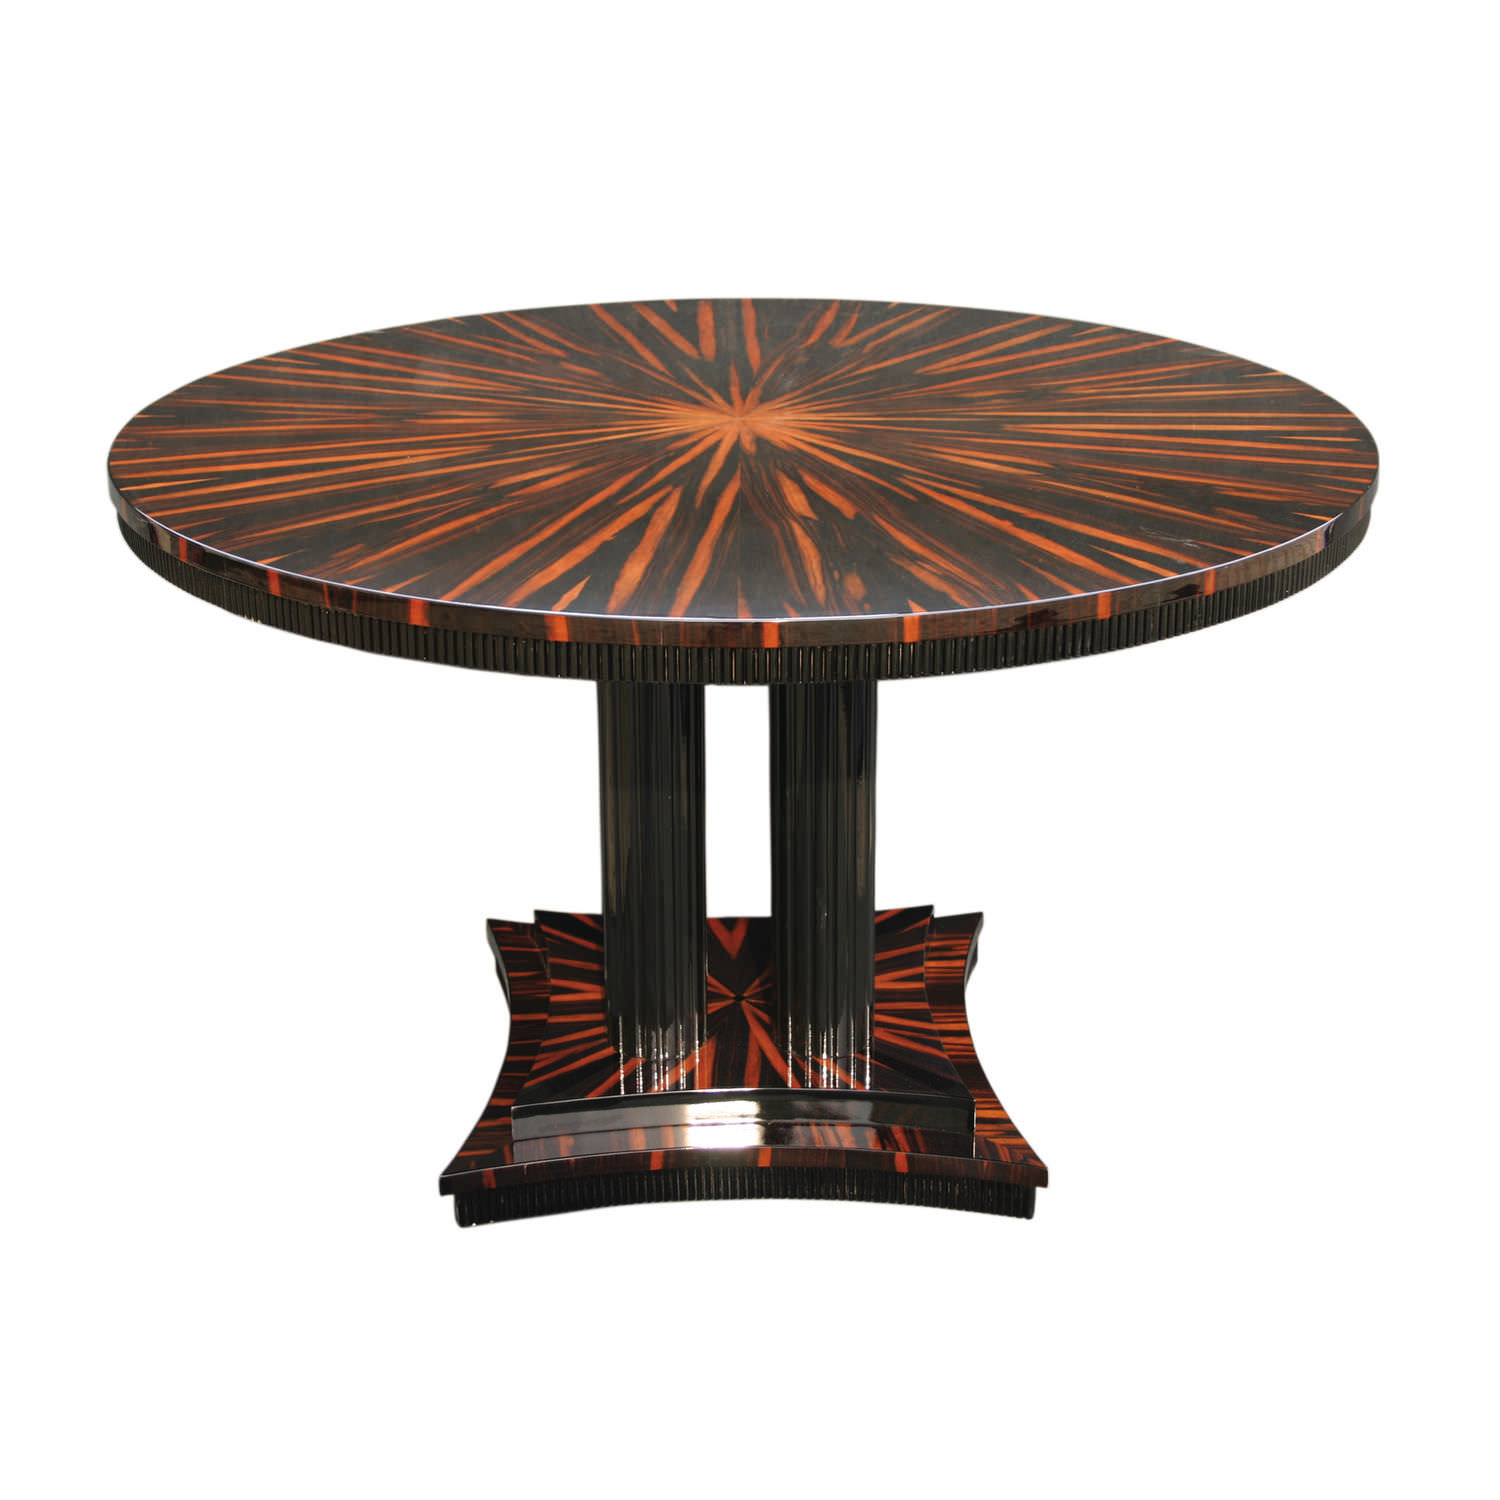 Art Deco dining table wood veneer Macassar ebony glossy